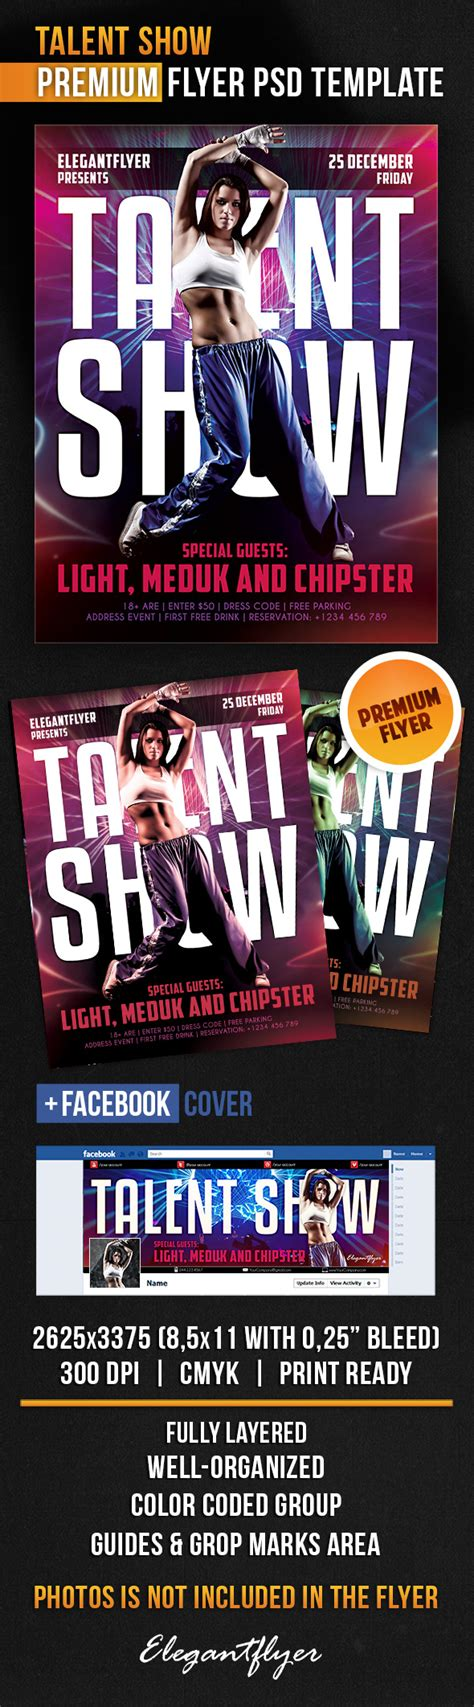 talent show flyer psd template facebook cover by